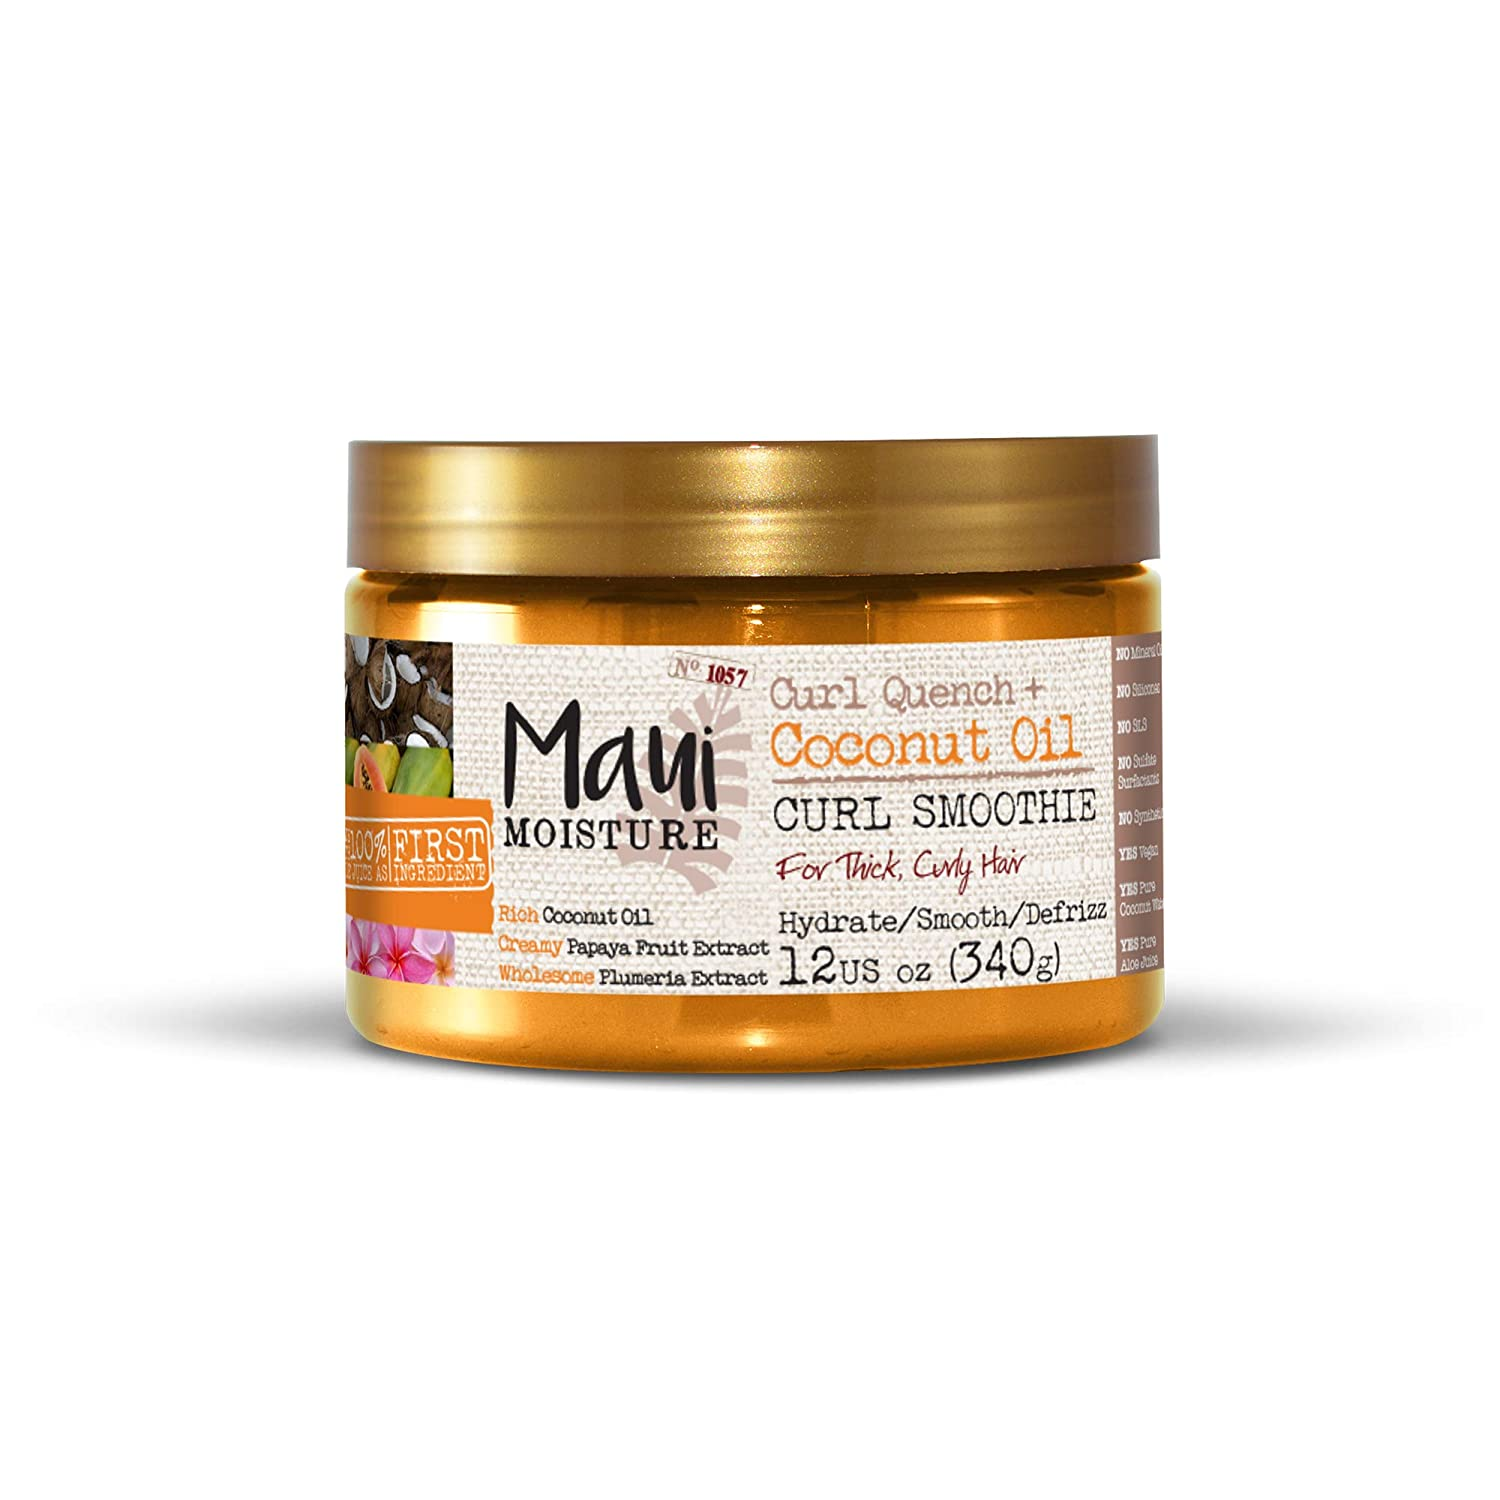 Maui Moisture Curl Quench + Coconut Oil Curl Smoothie 340g Vogue International 7093500